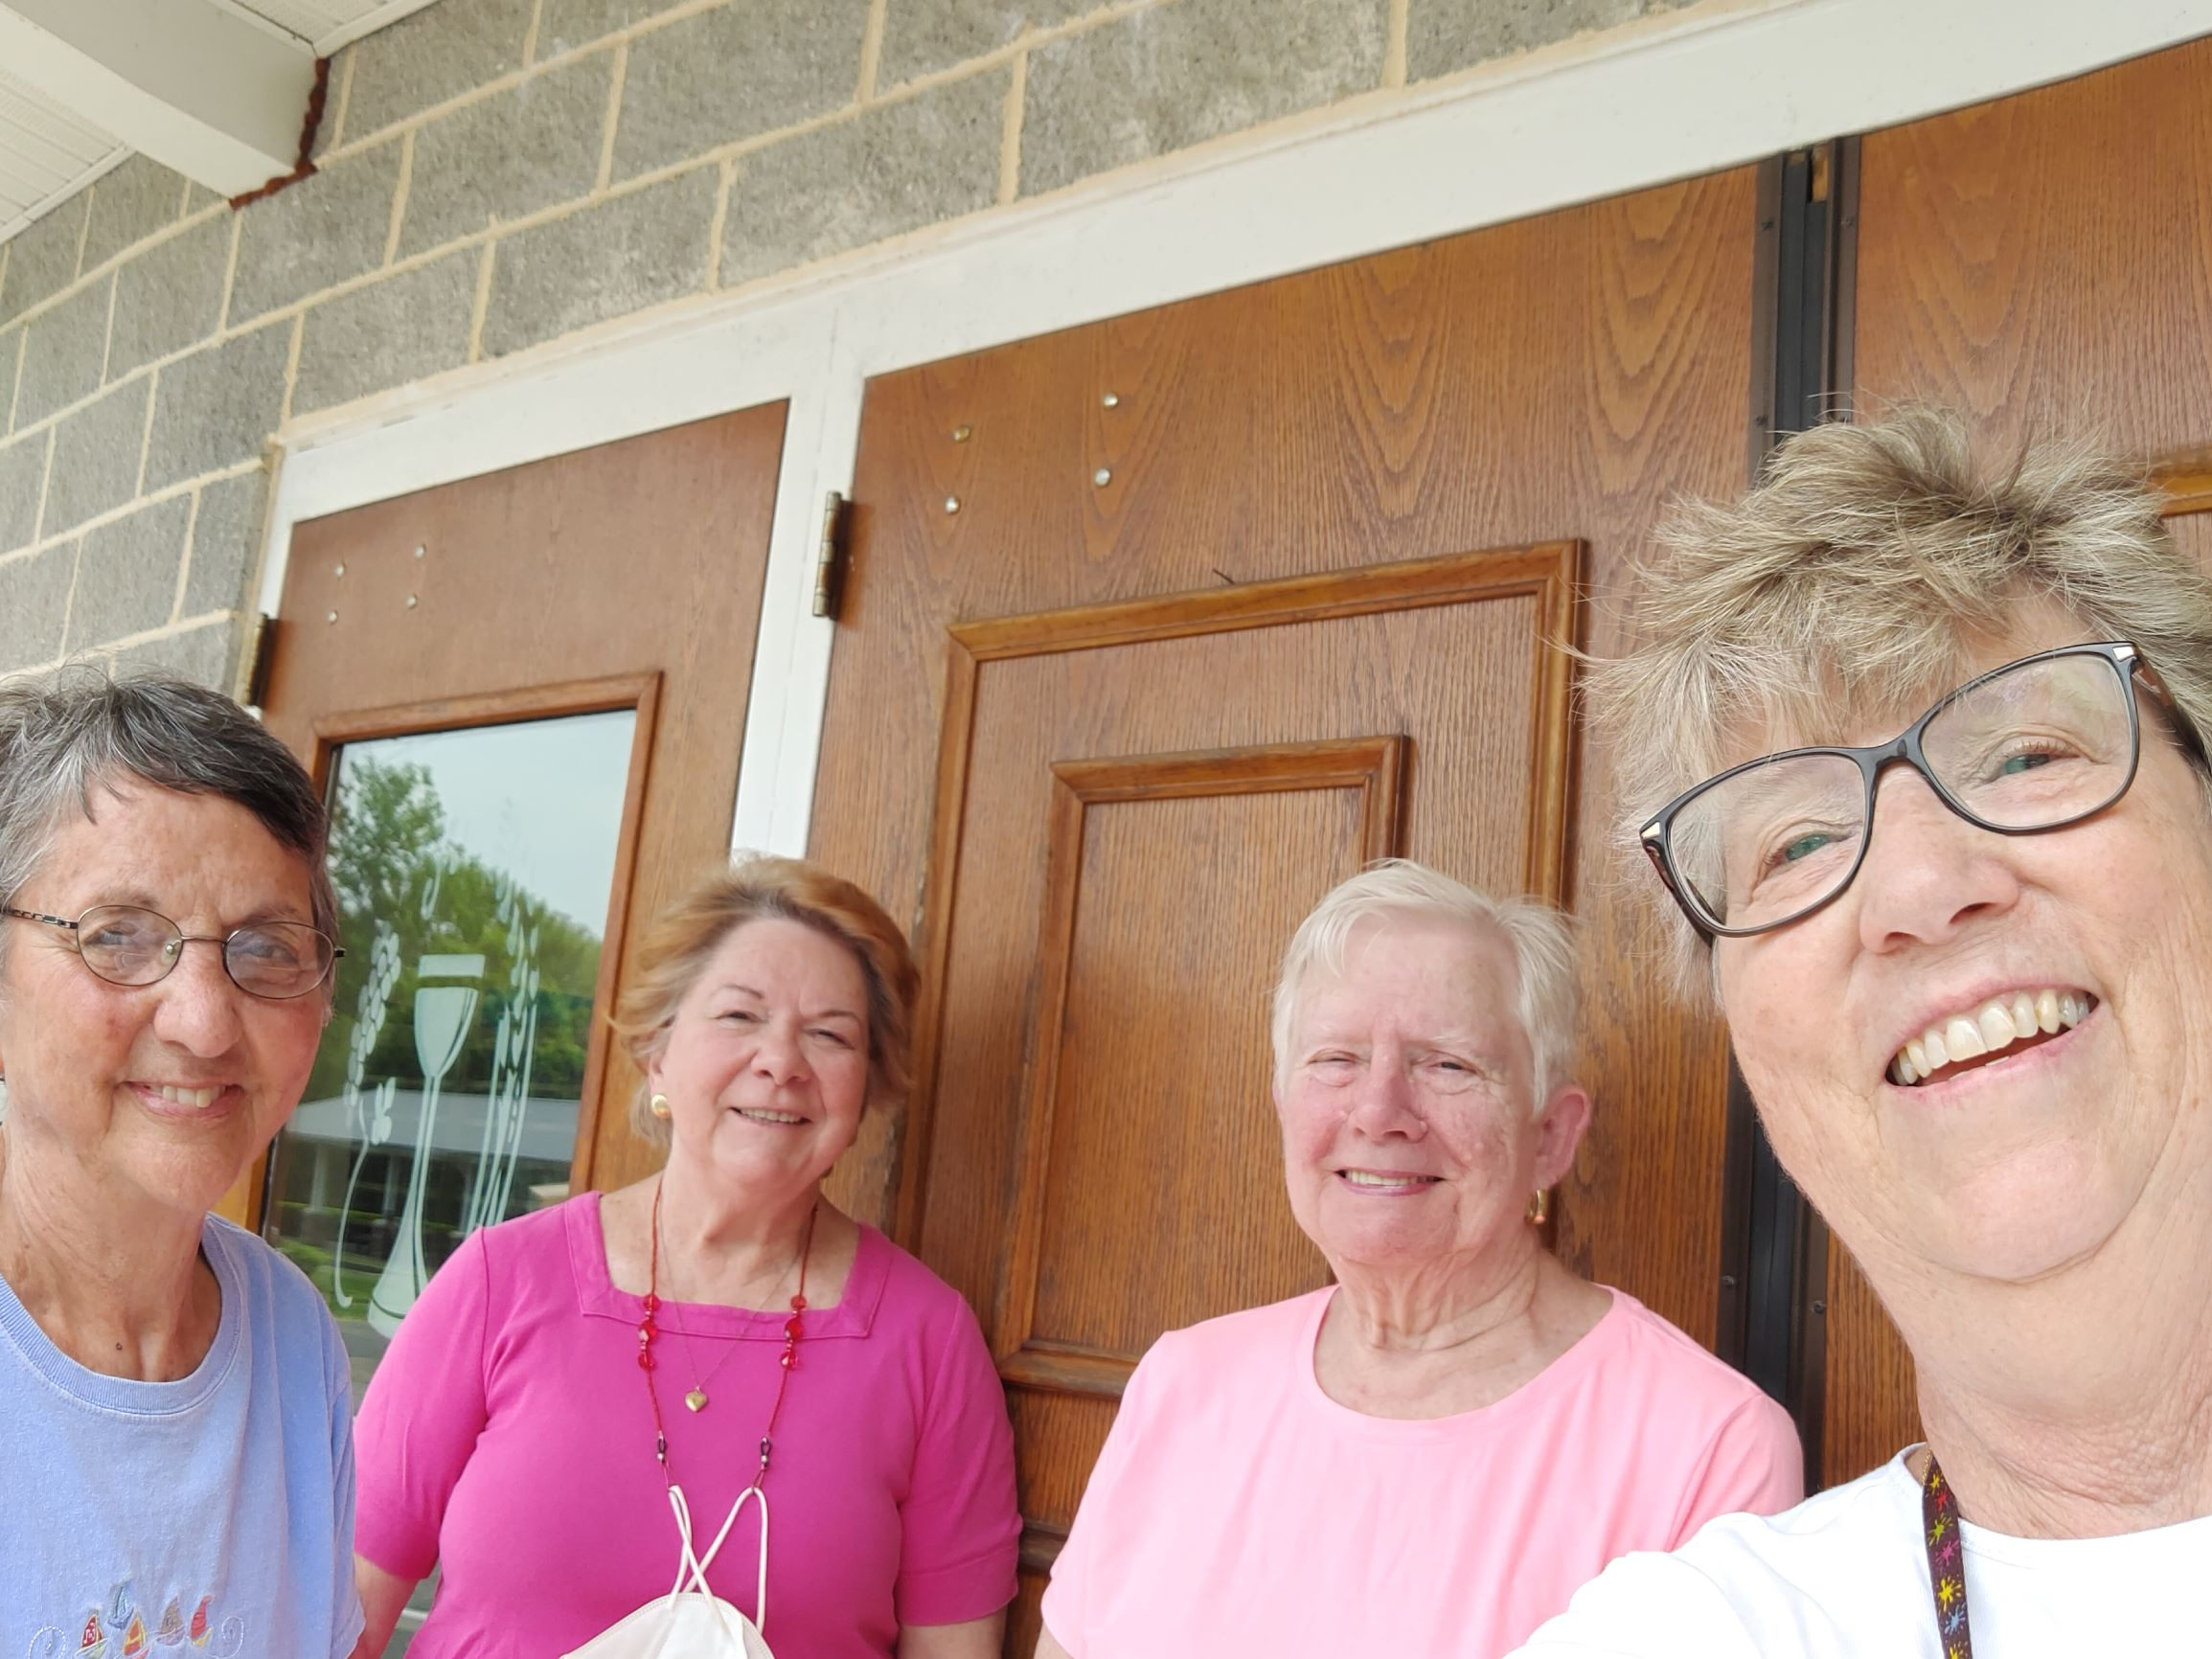 A selfie of mission team members while stocking the food pantry.